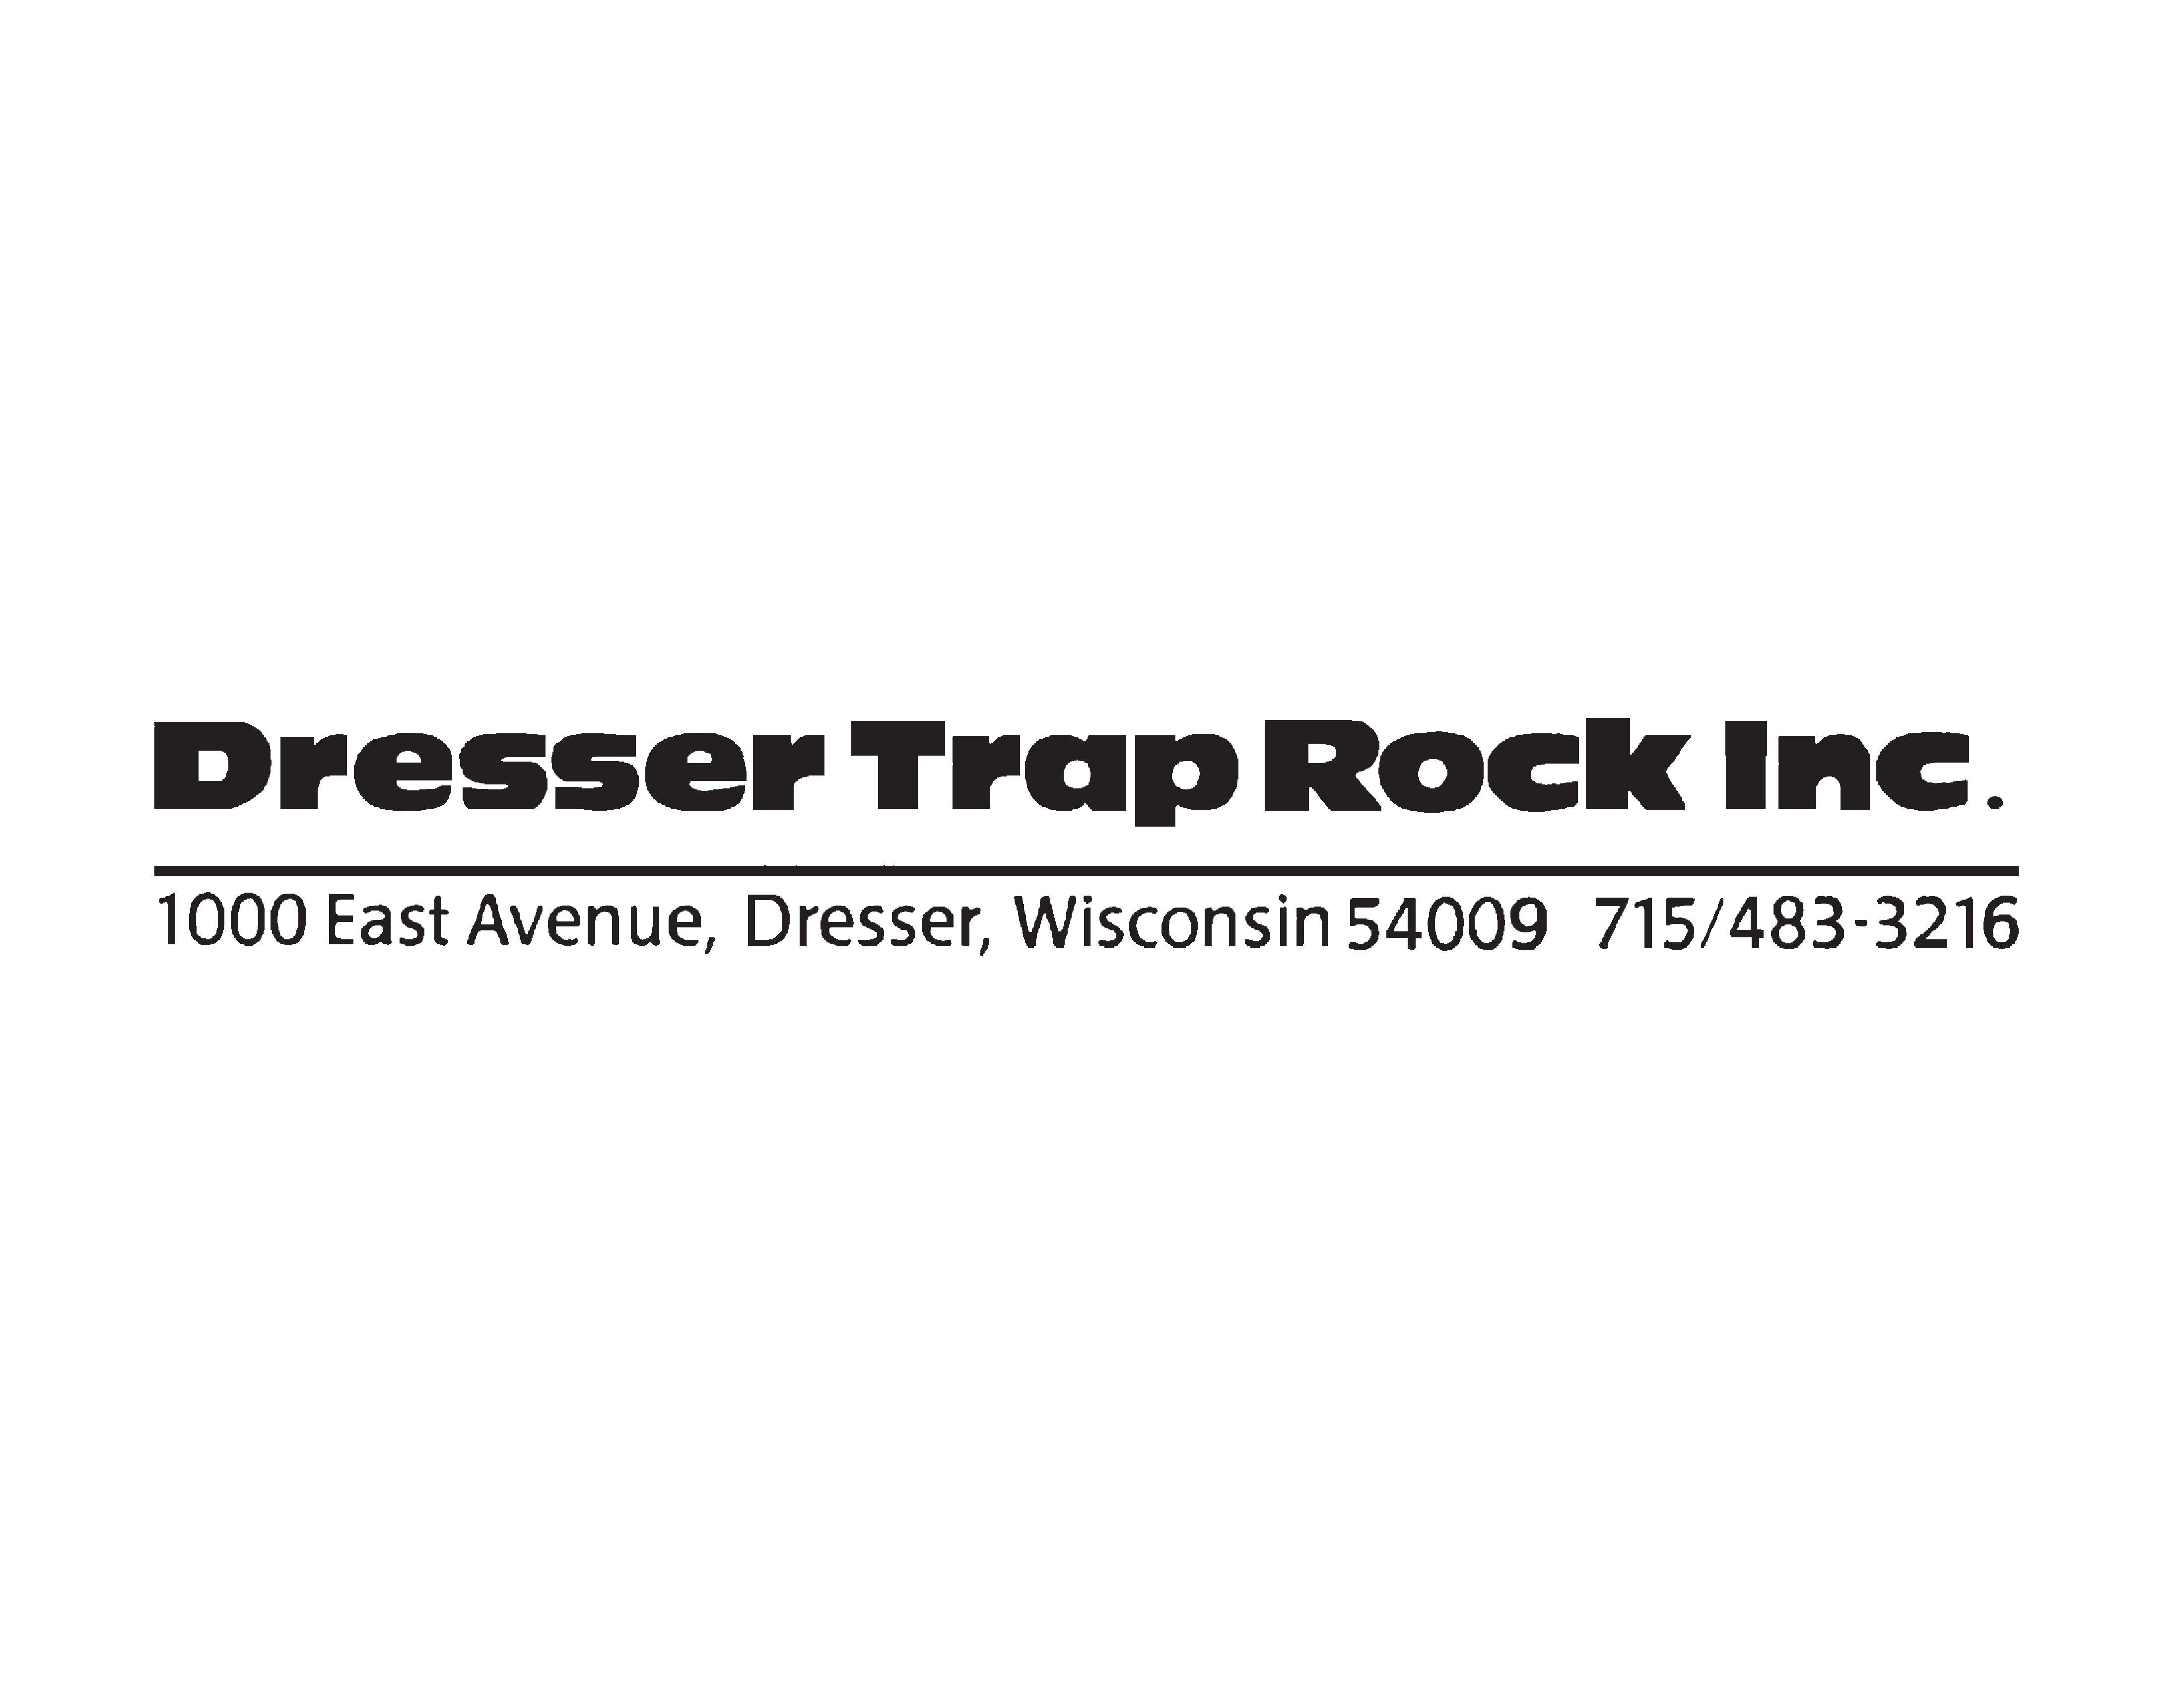 Dresser Trap Rock logo